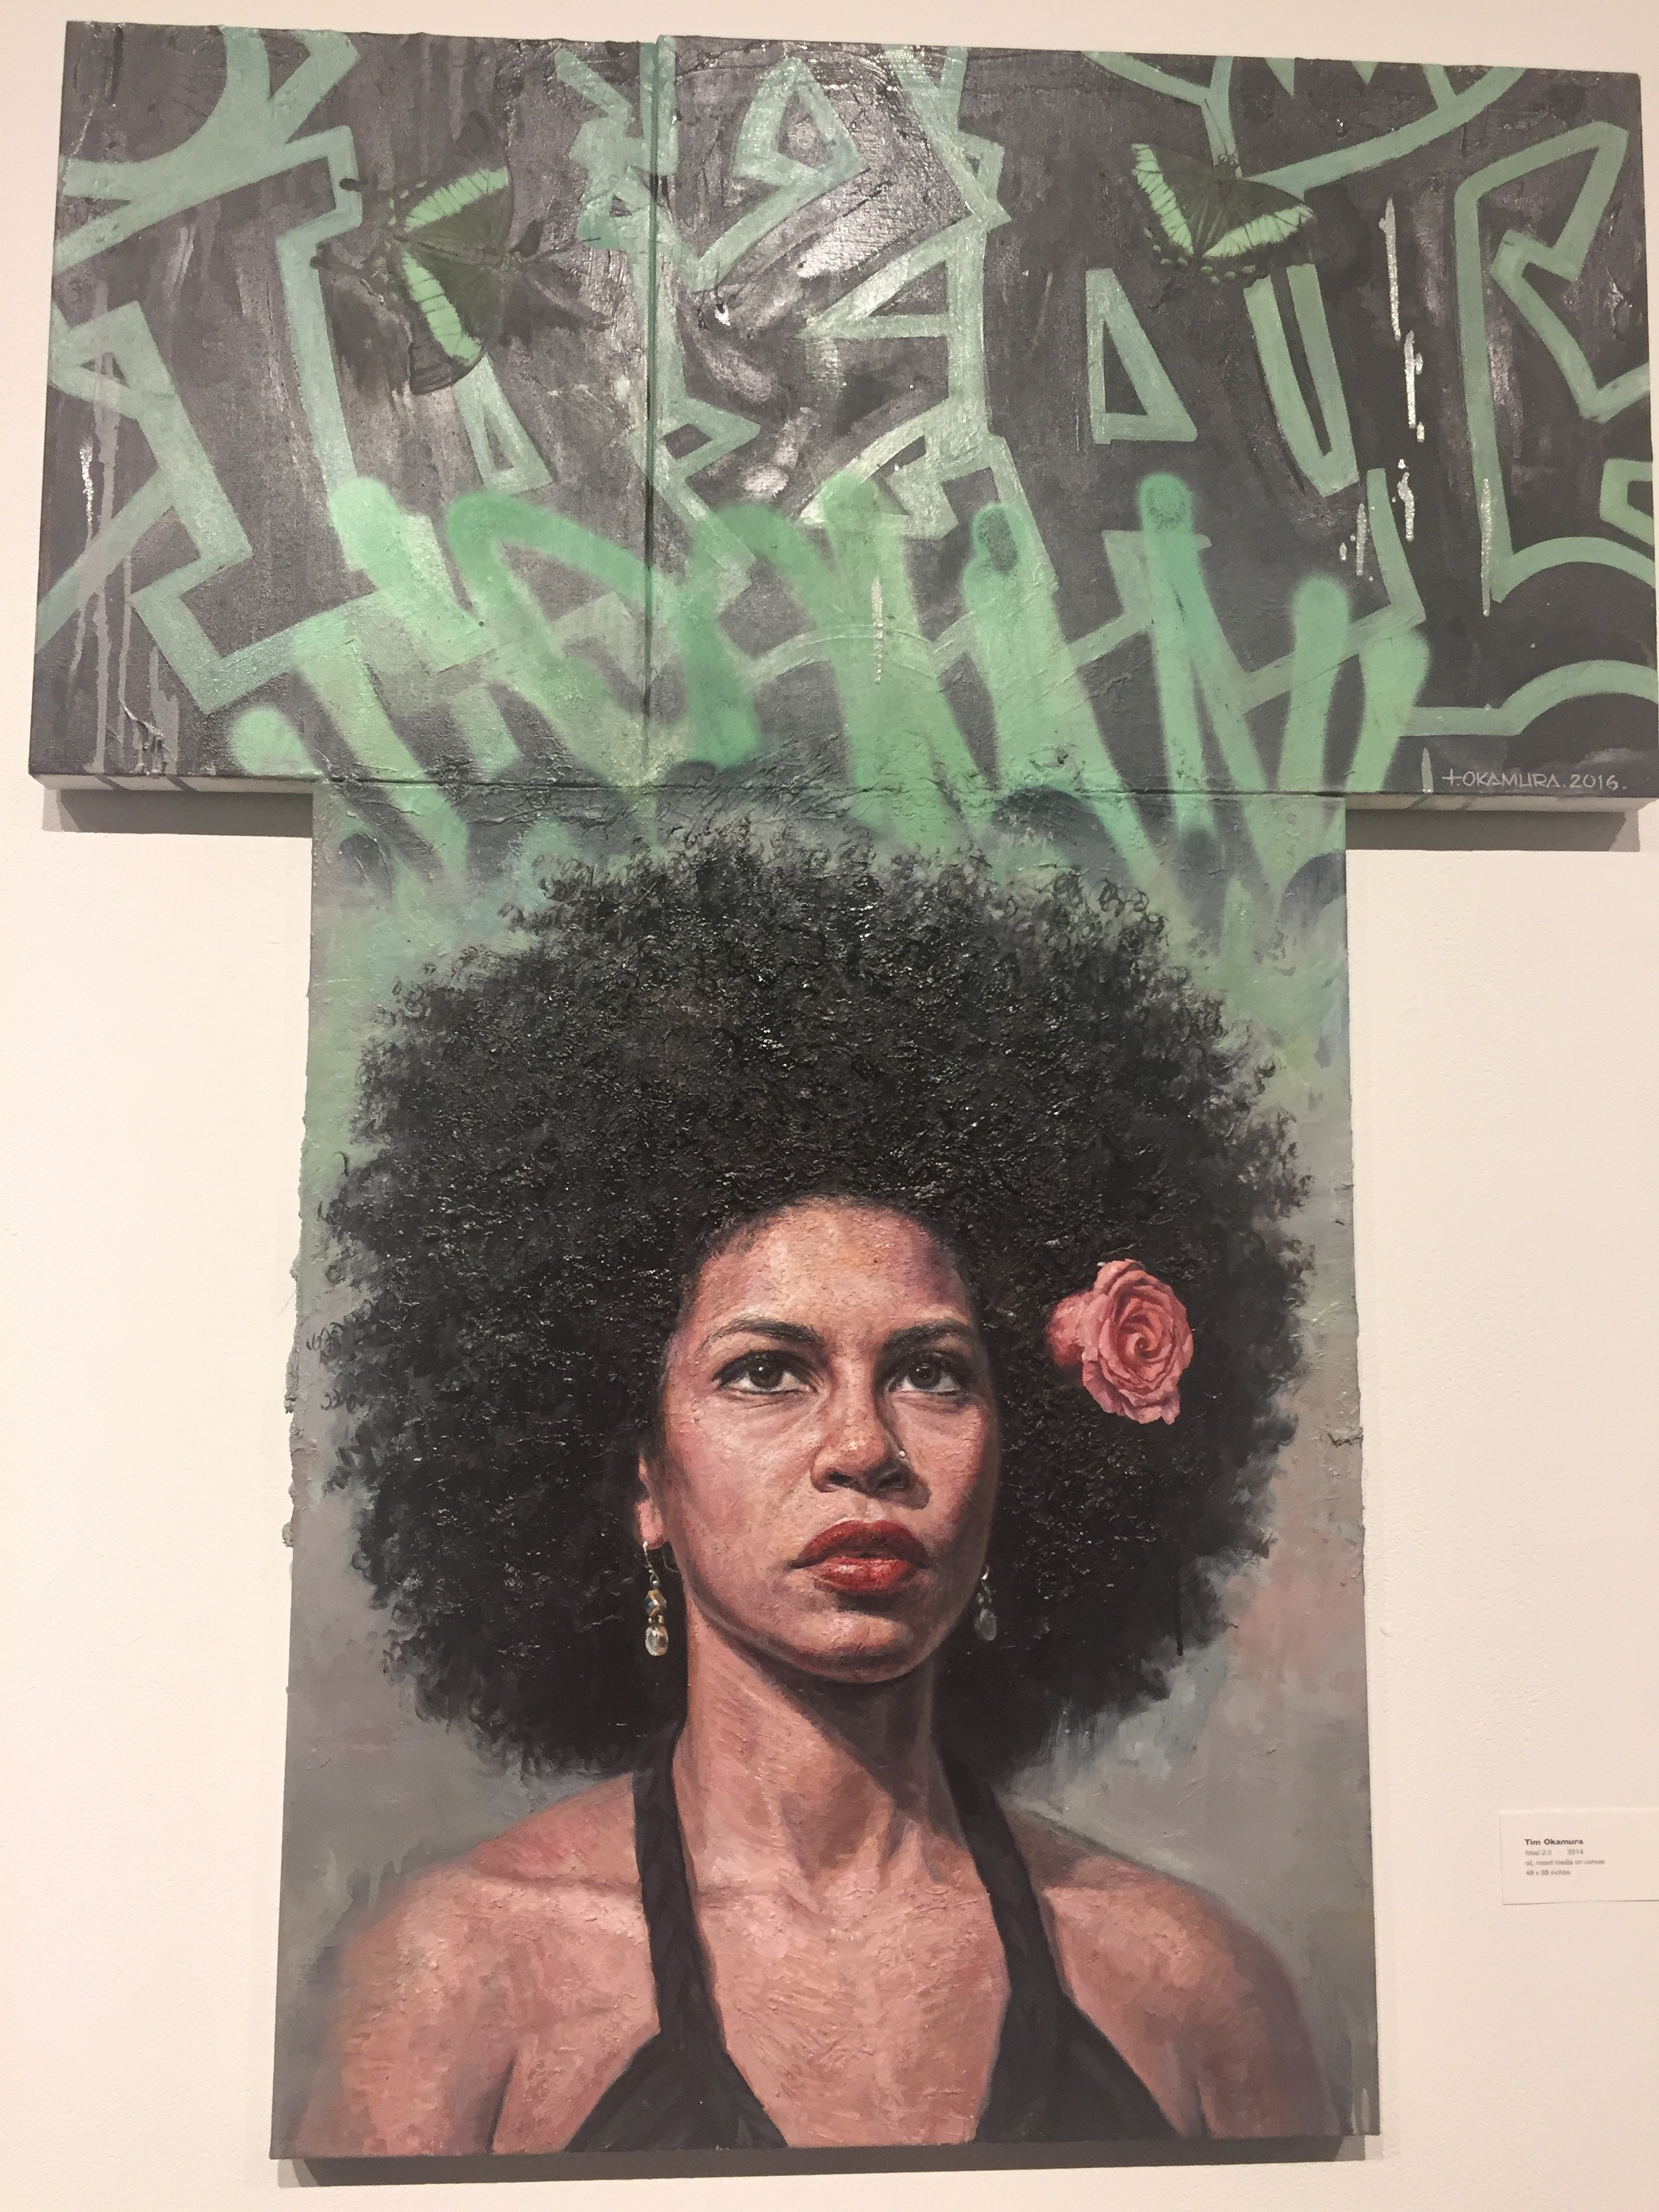 """Ideal 2.0"" by Tim Okamura"